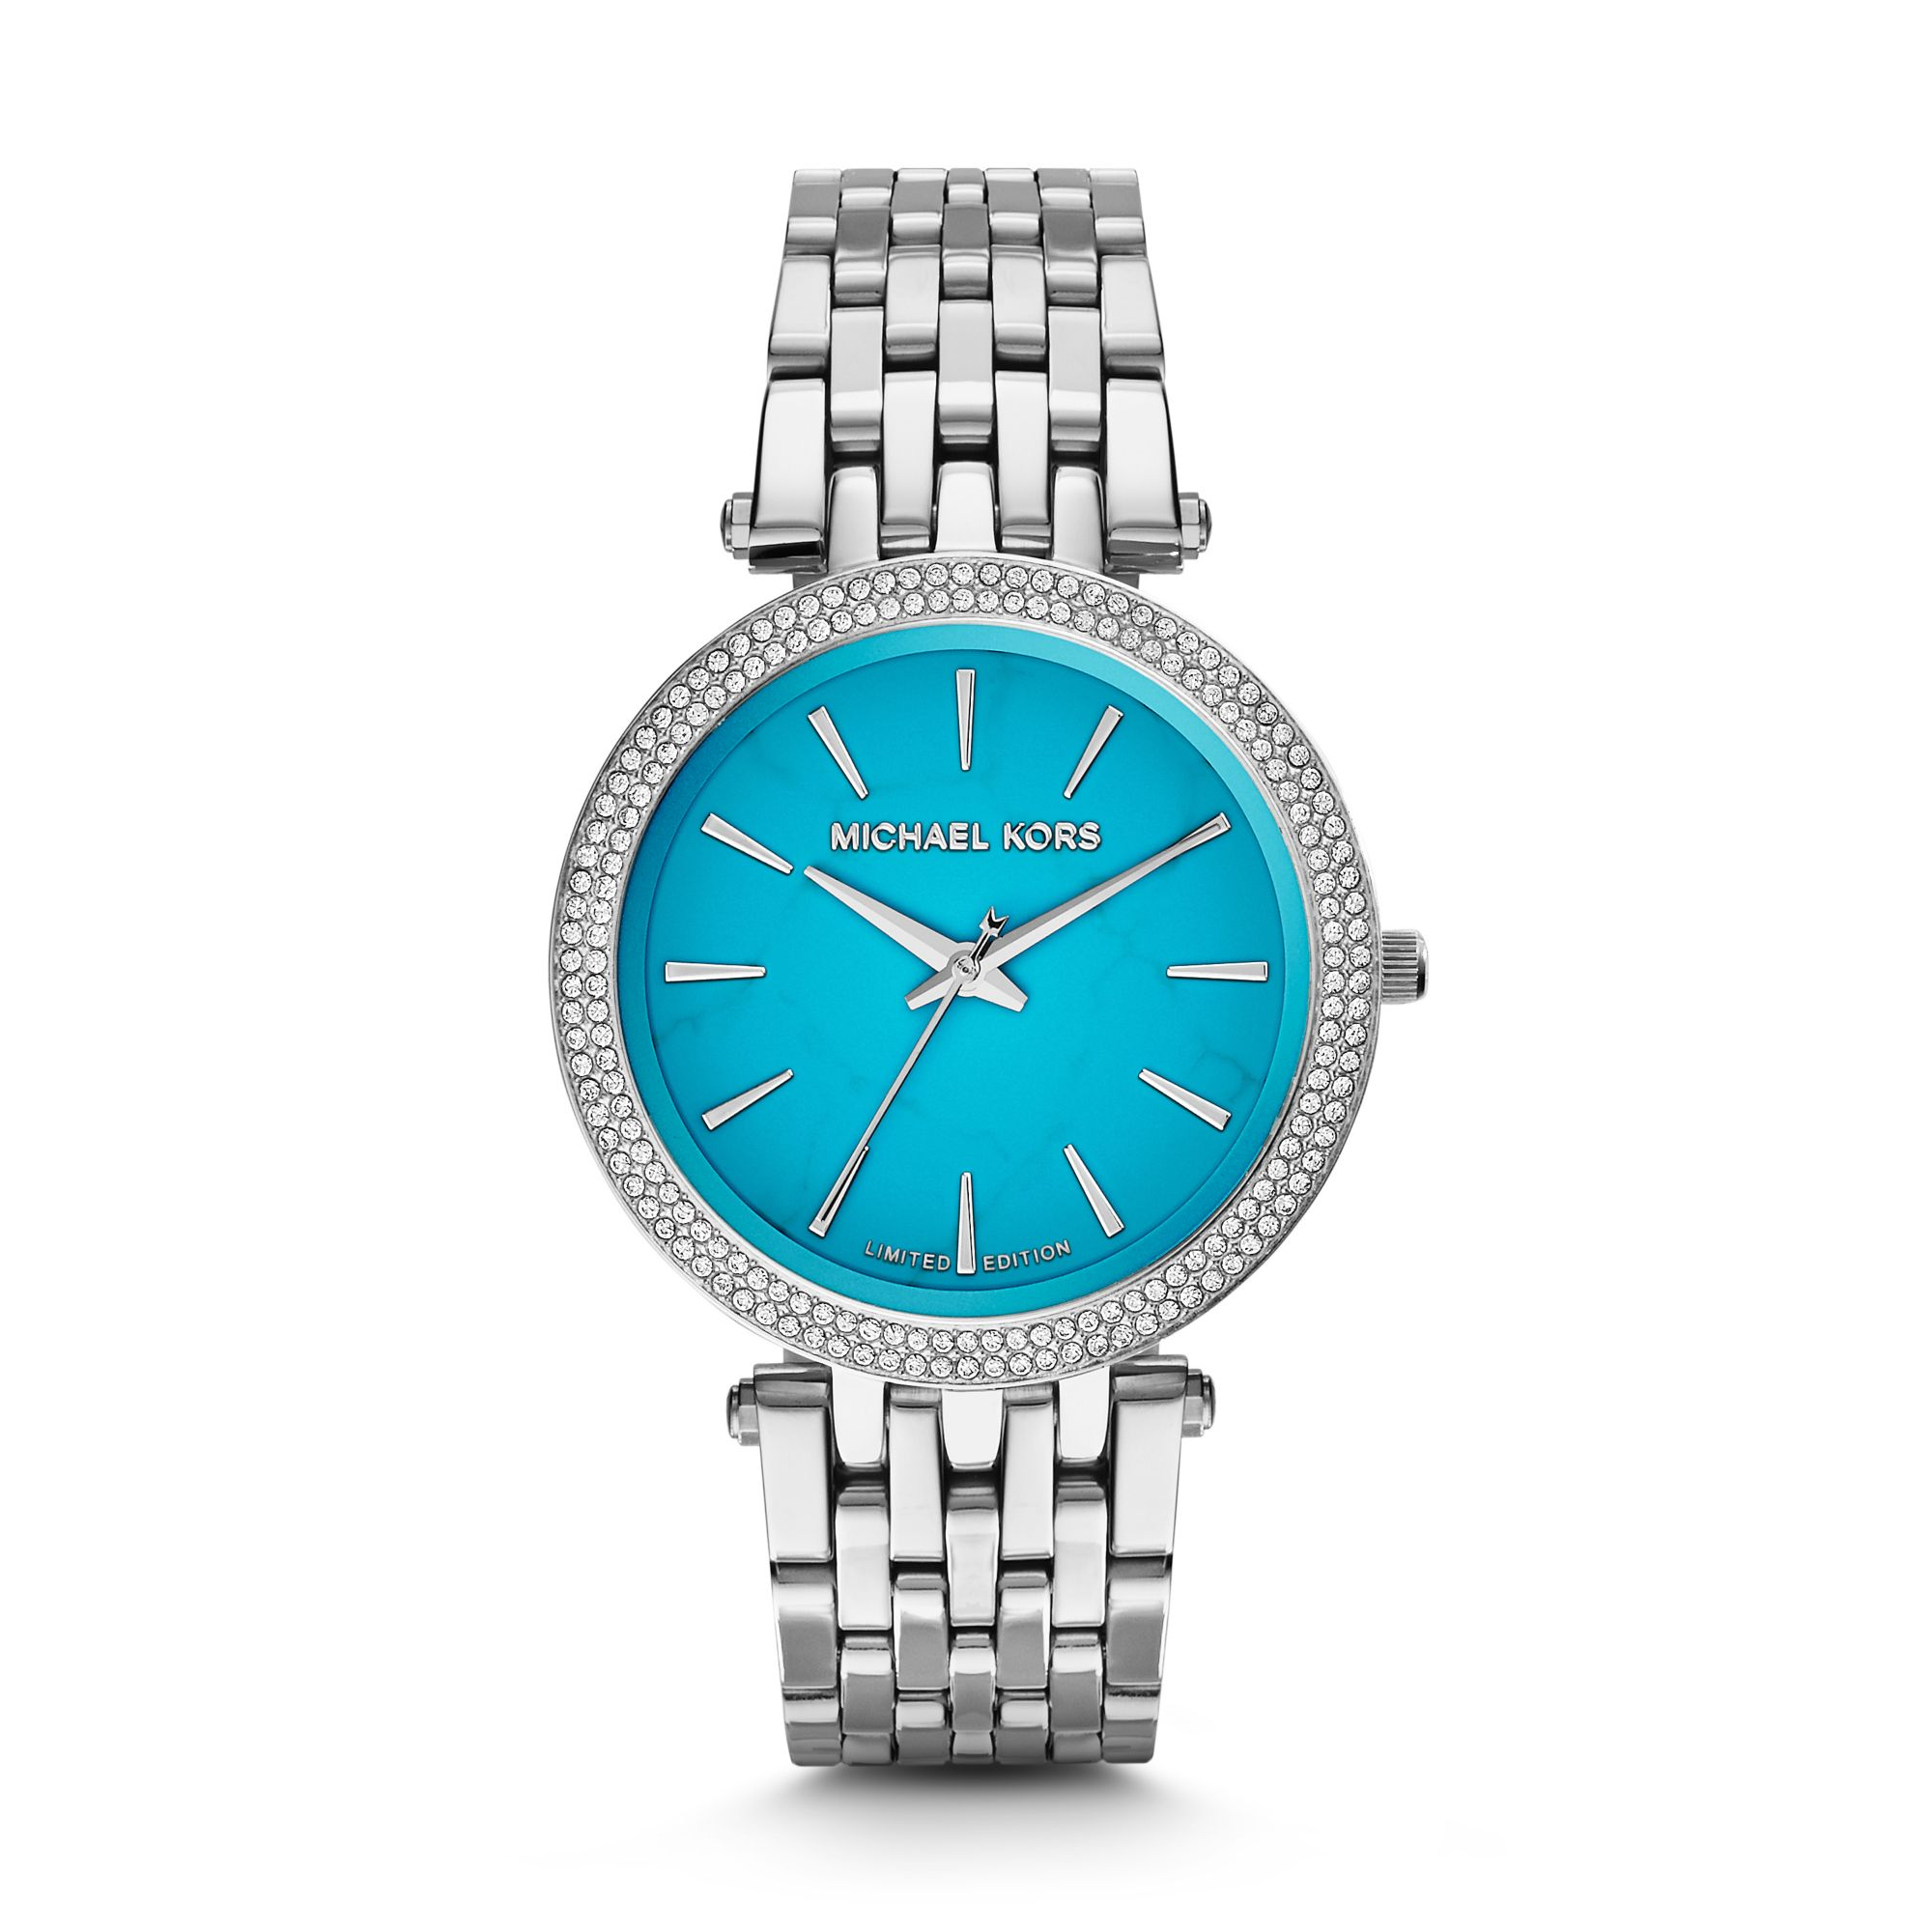 Find all Michael Kors Outlet: store locations, hours and Michael Kors Outlet Online. Save money on Michael Kors Handbags, Purses, Watches, Shoes, Clothing.